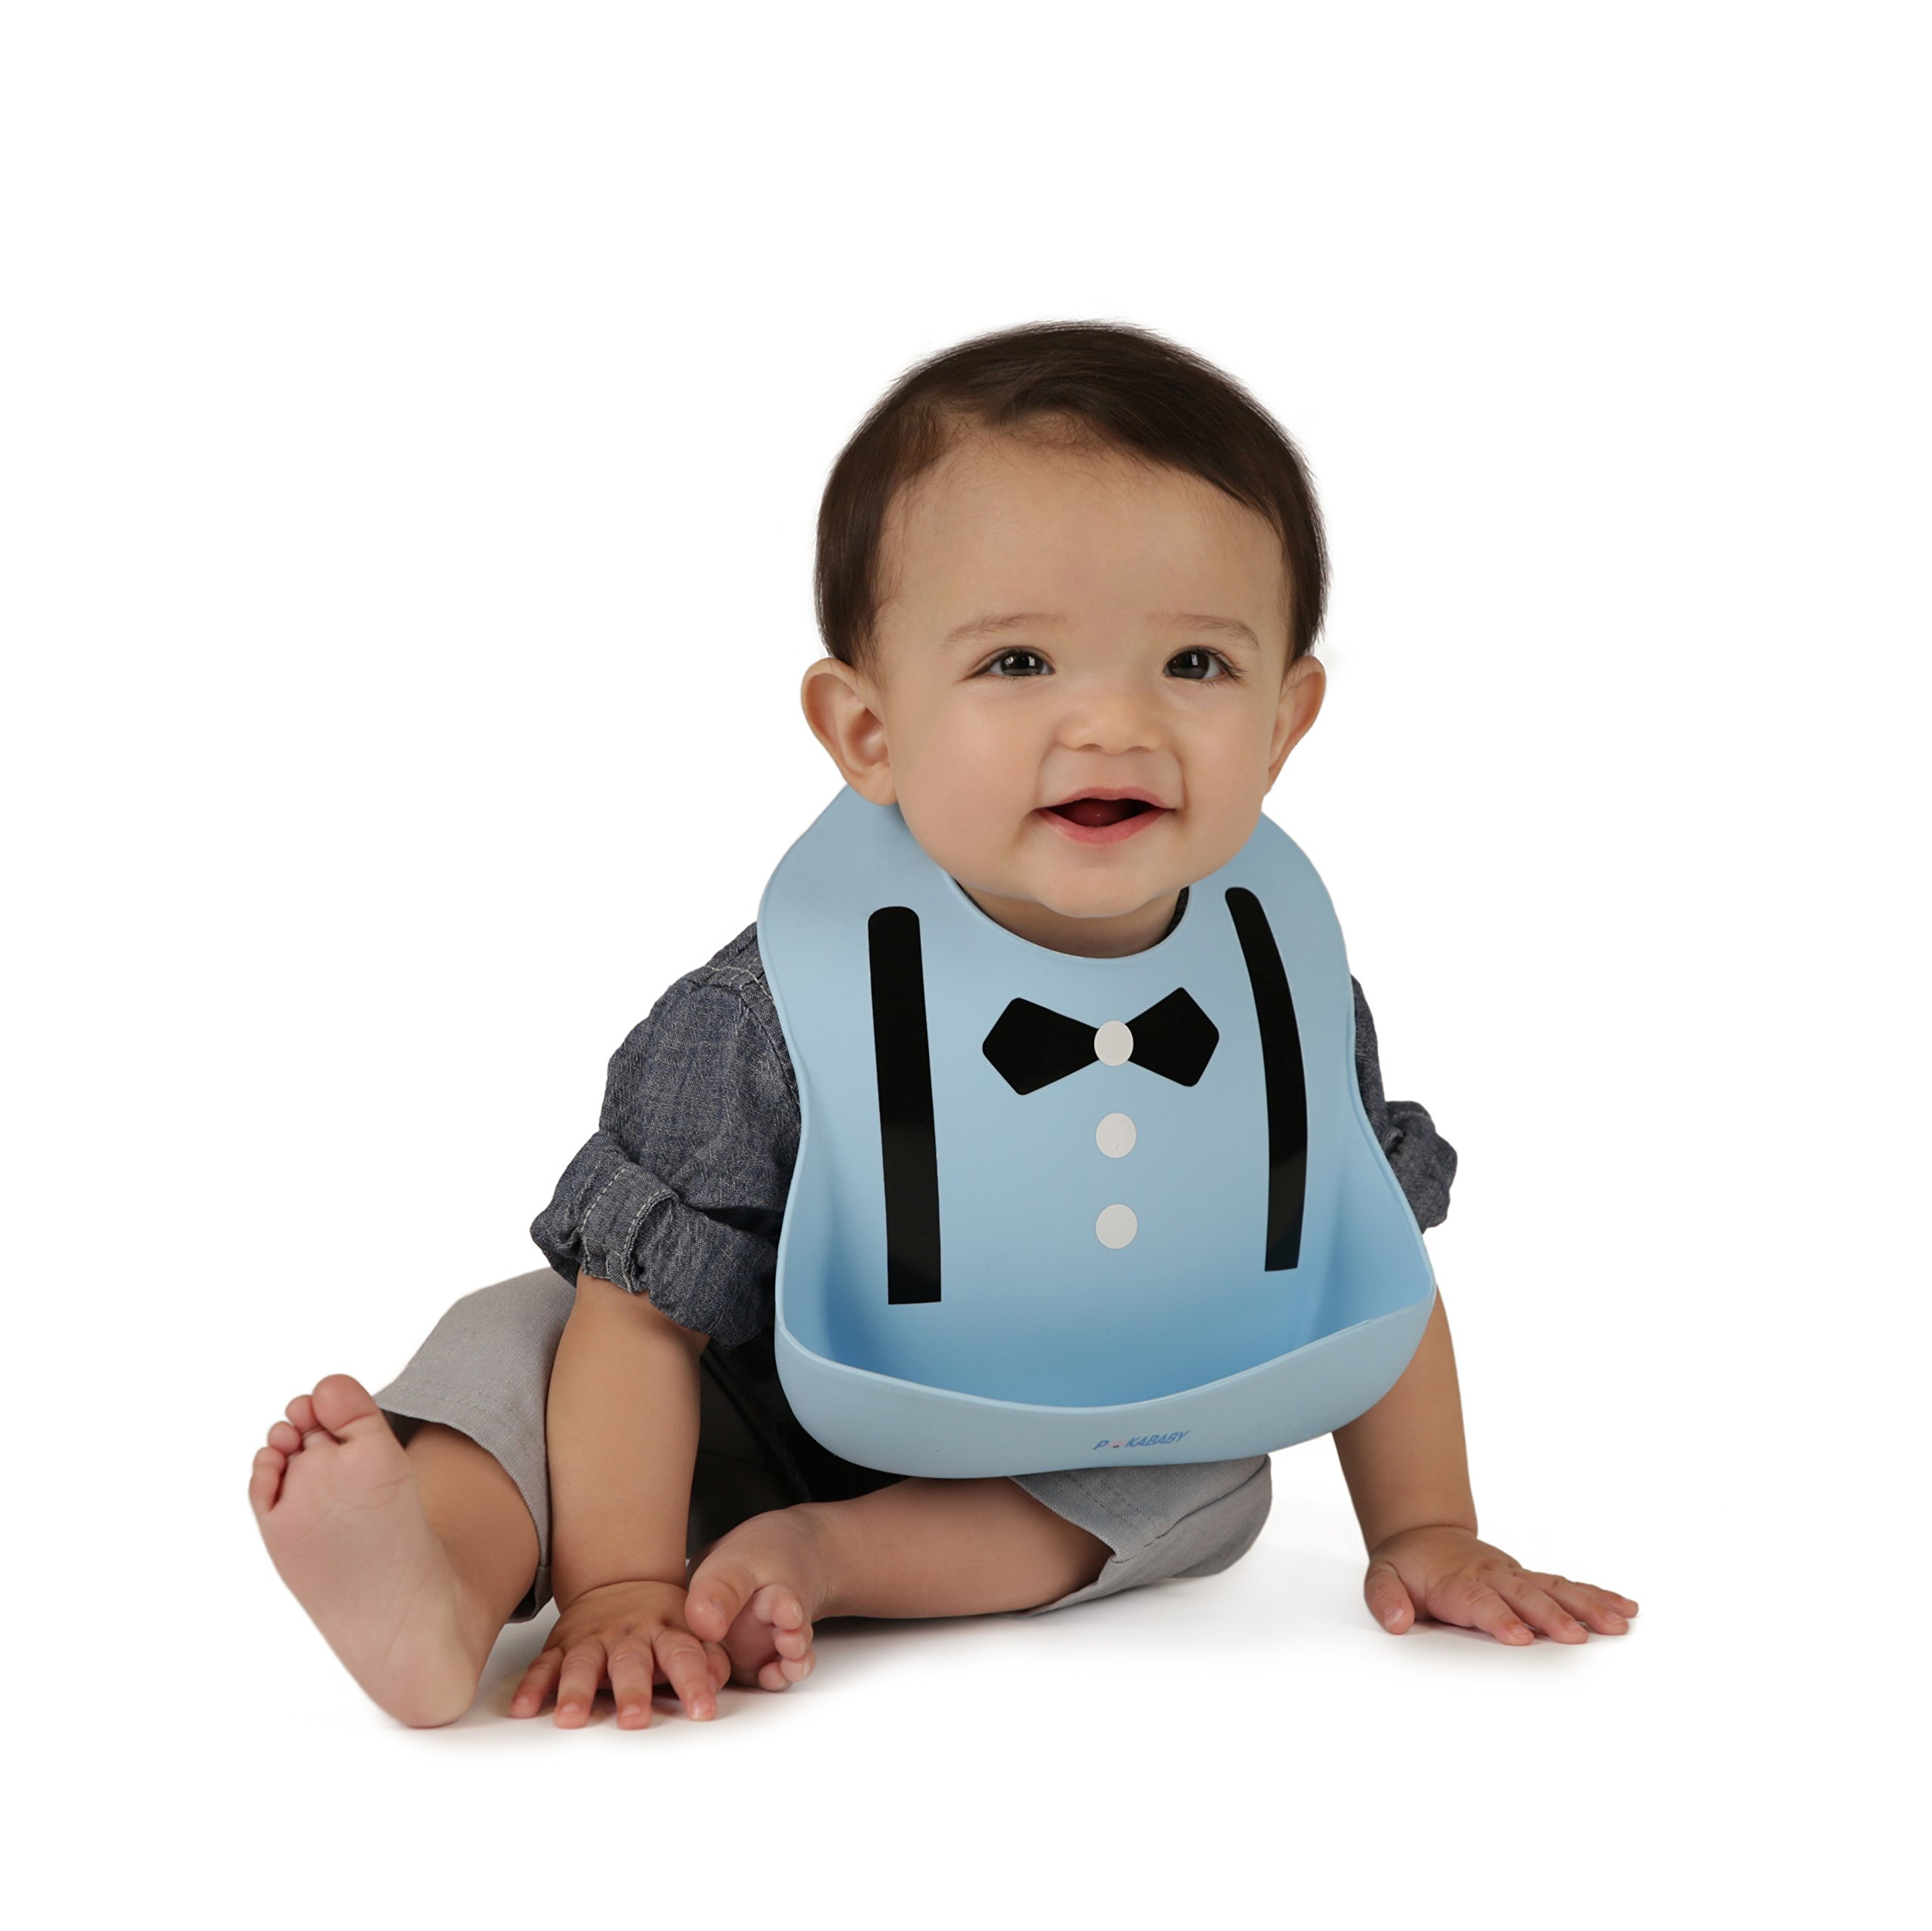 96d34cc74e7 Waterproof Bibs for Toddlers - Silicone Baby Bib – Easy to Clean Feeding Bib  - Soft